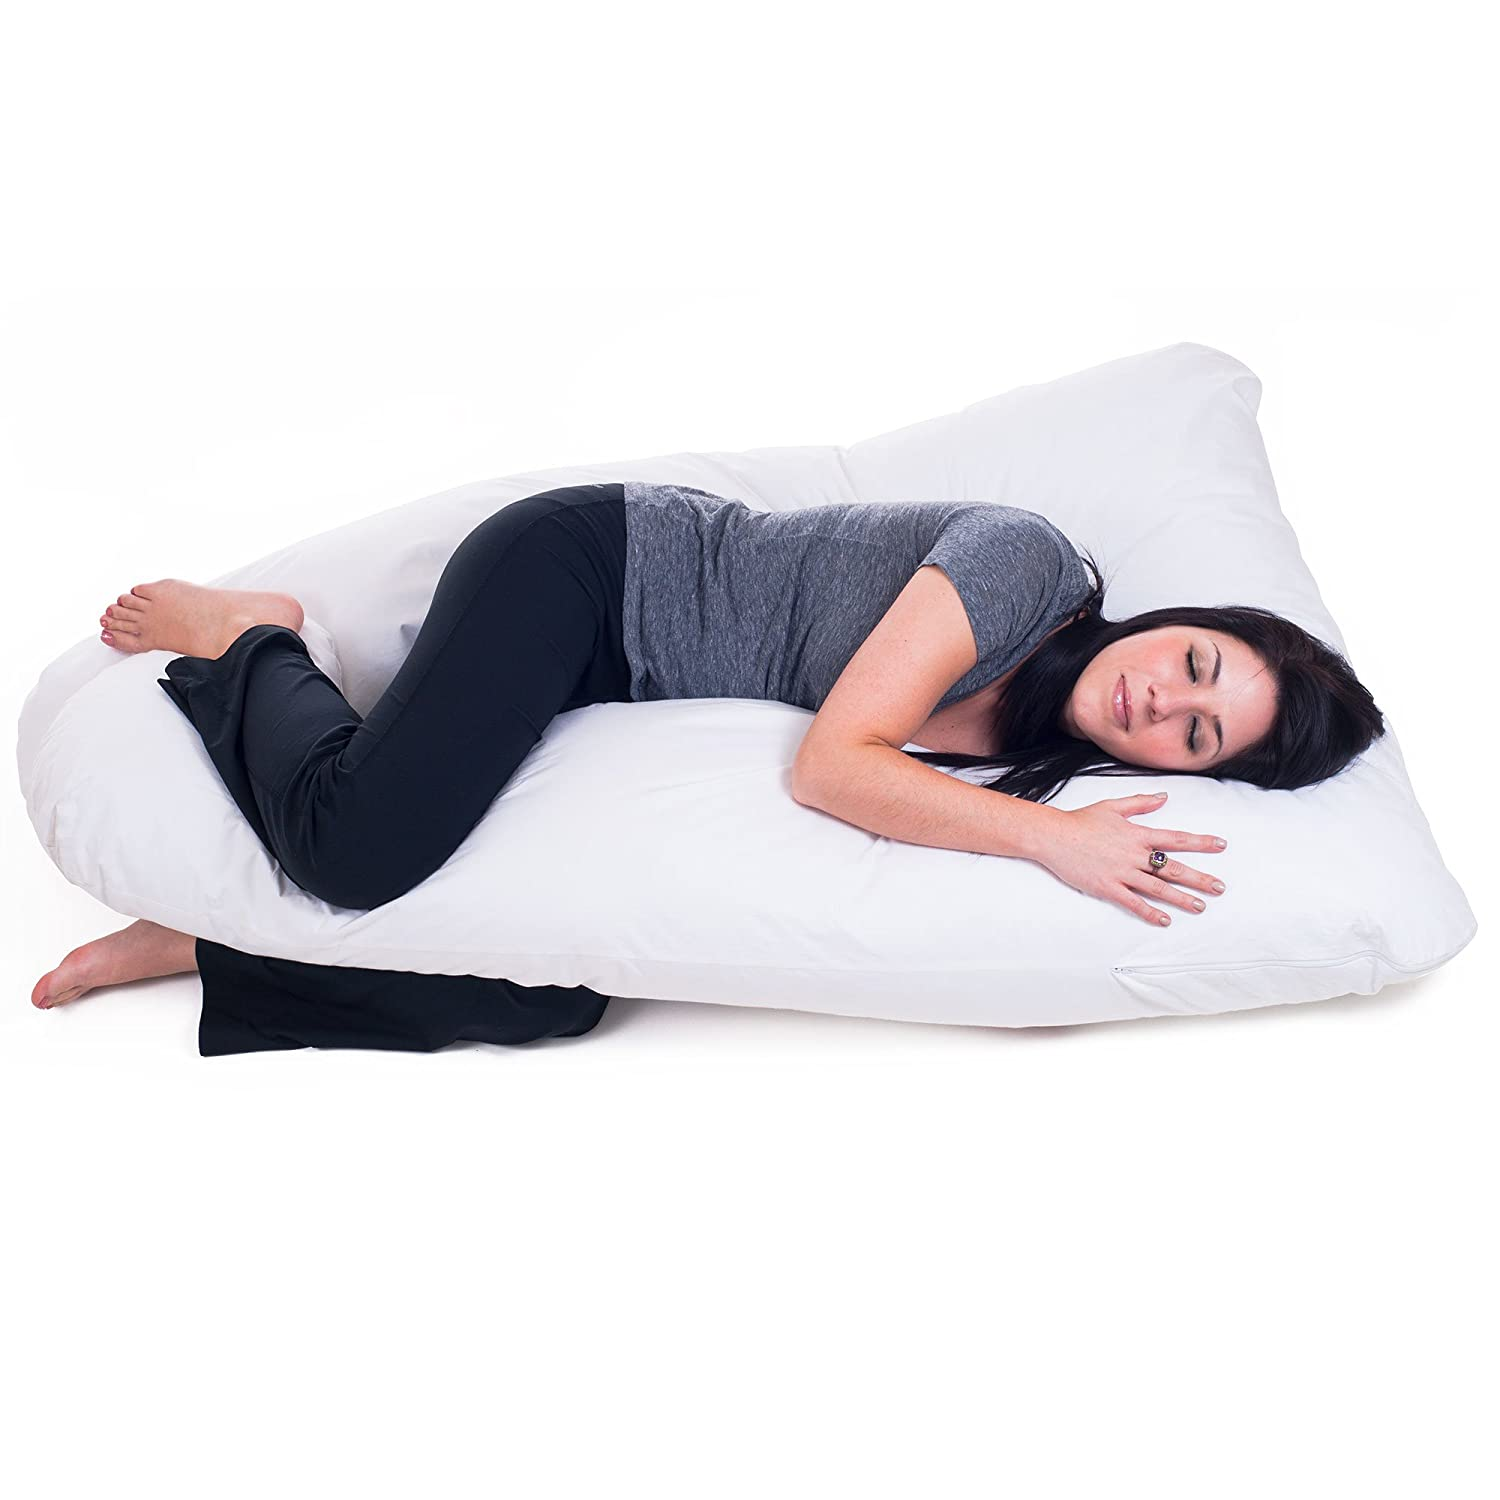 Bluestone 64AZ-89764 Full Body Contour U Pillow (Great for Pregnancy) Trademark Global